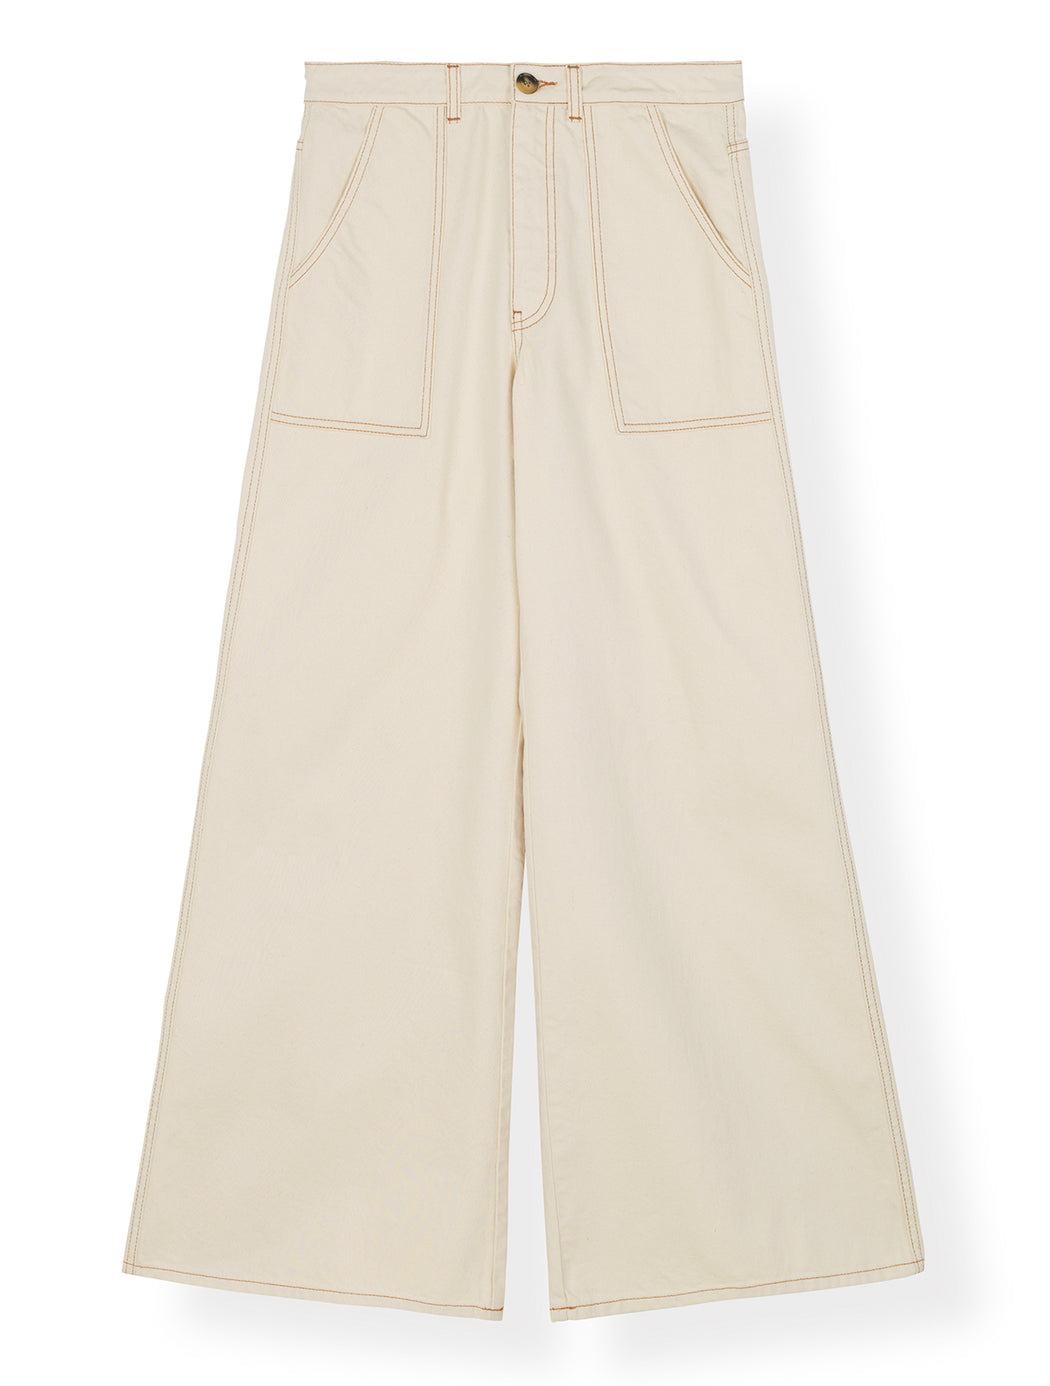 Heavy twill Mid-Waist Pants